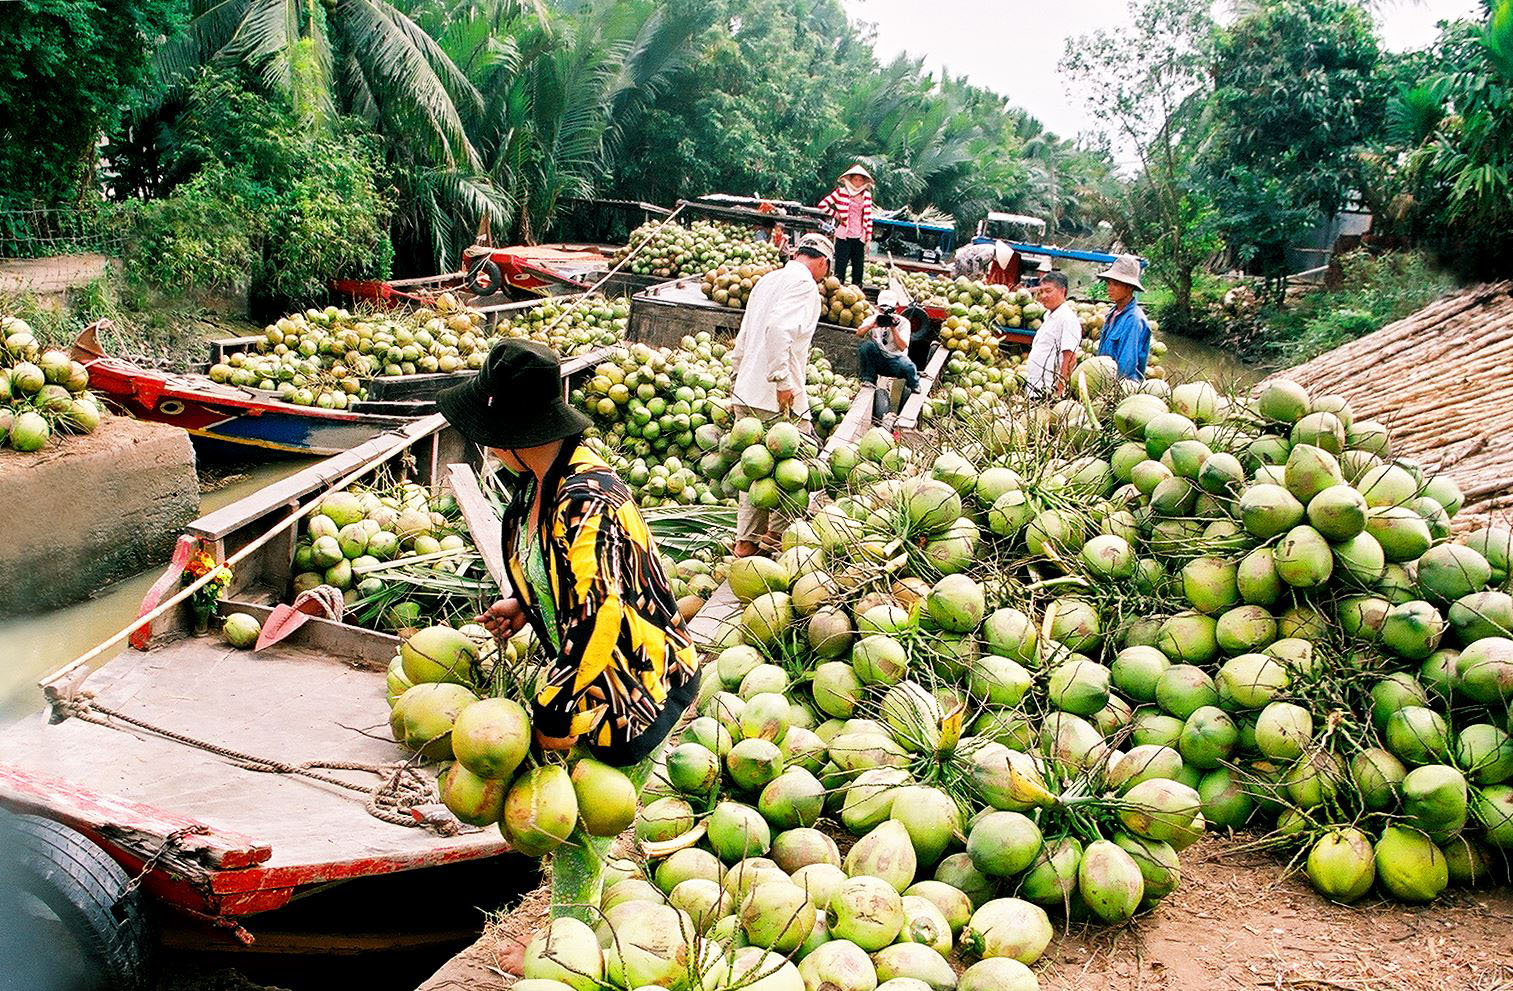 Make sure you try these 5 coconut specialties in Ben Tre